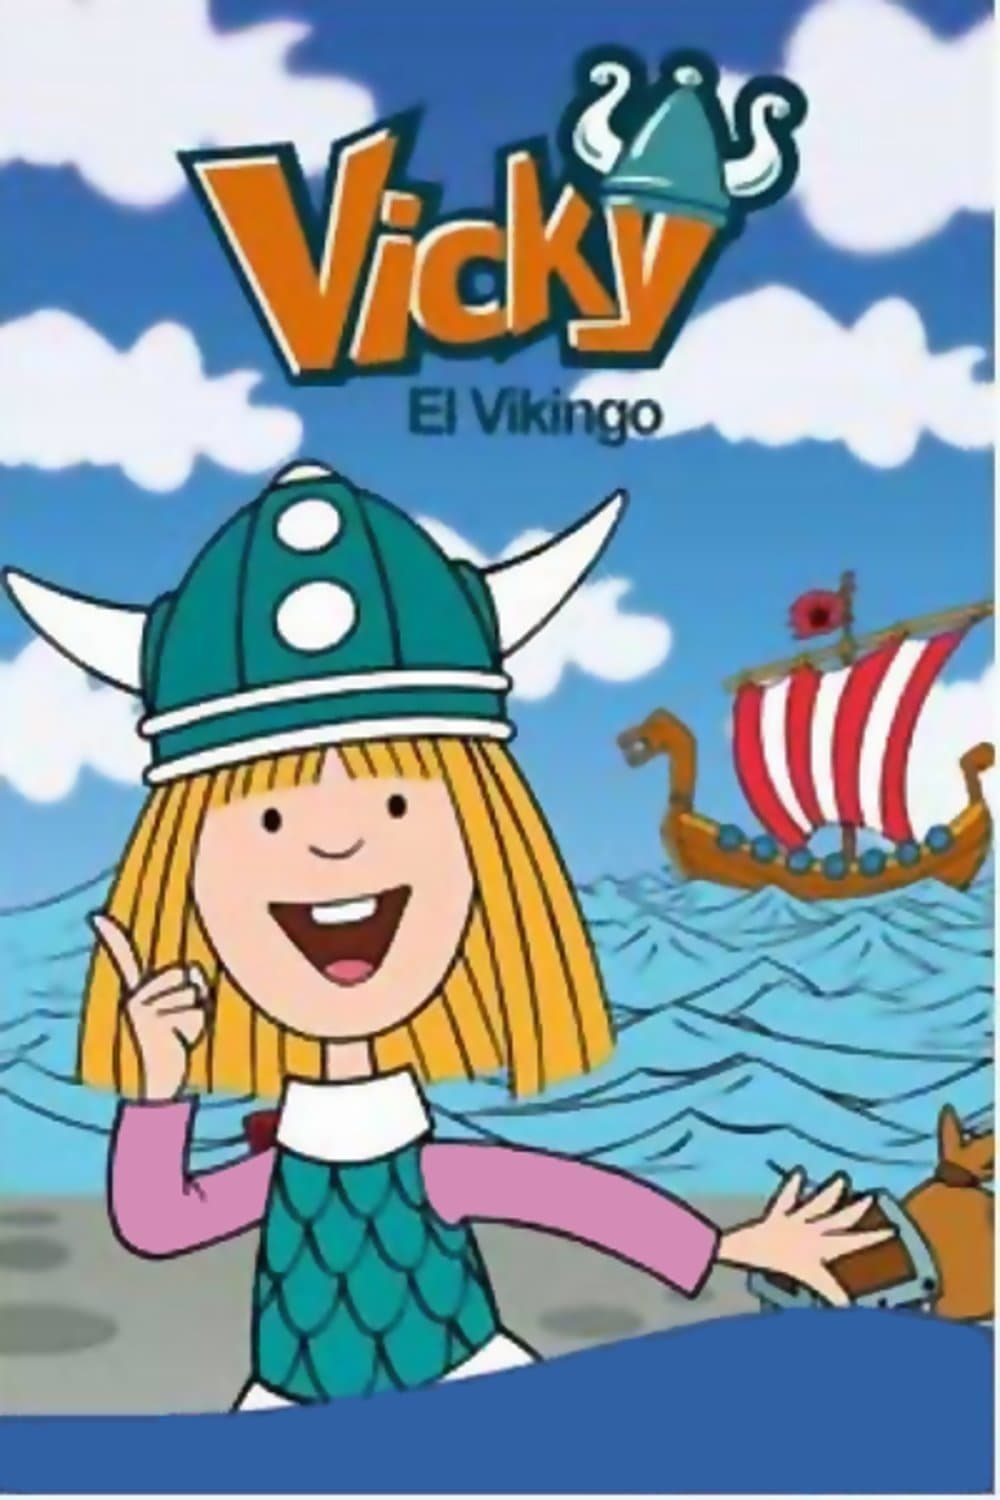 Vicky the Viking (1974)